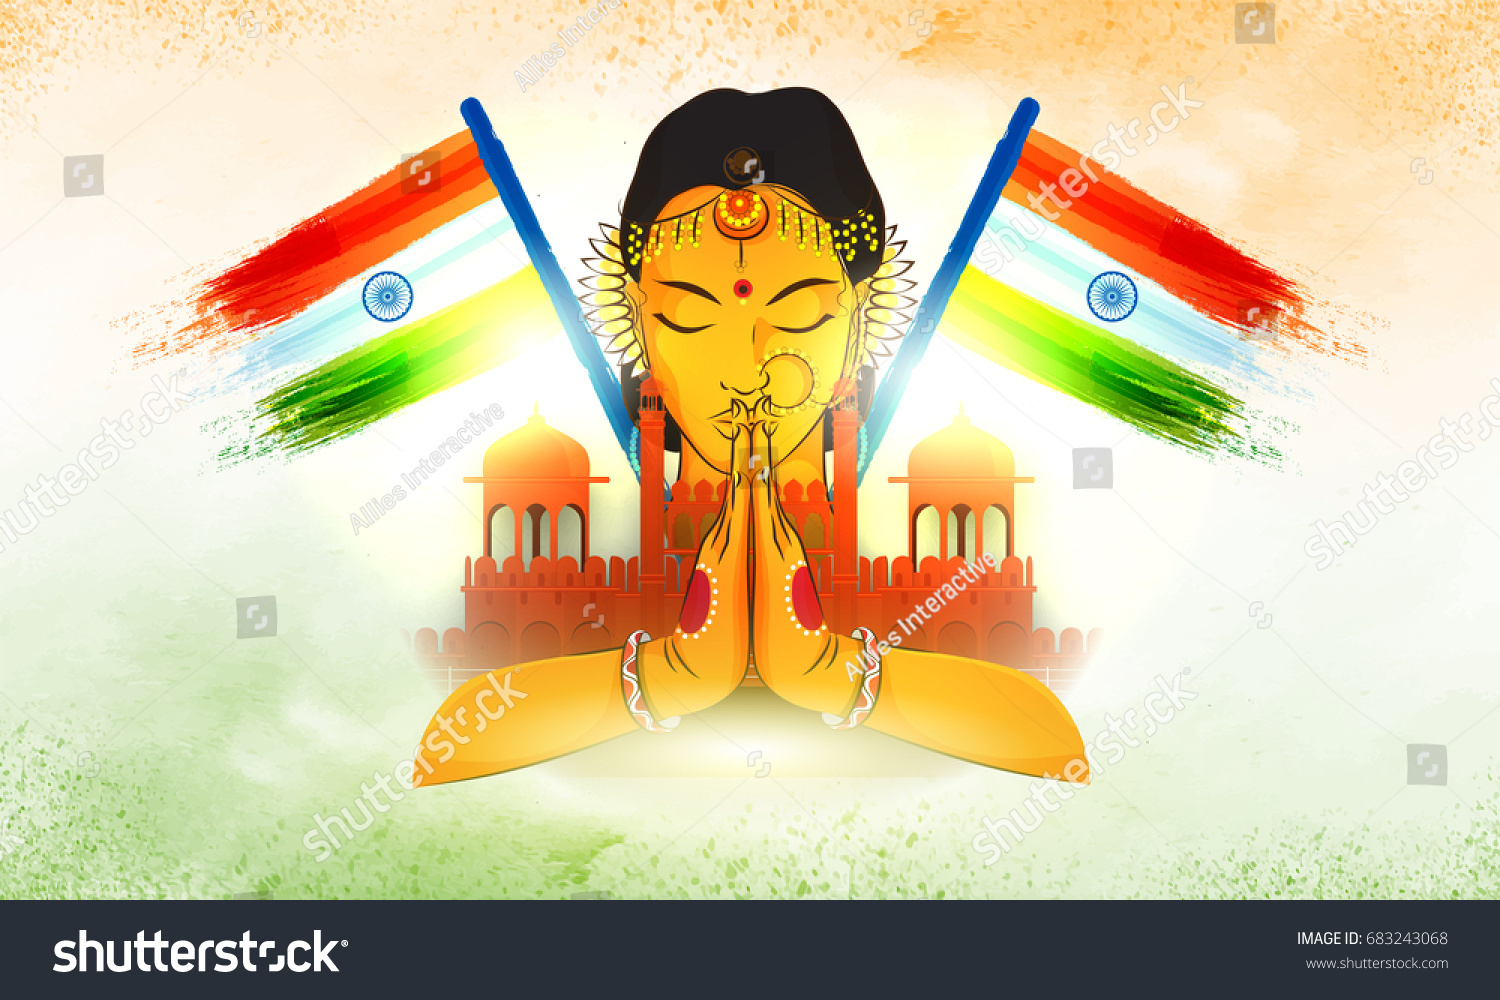 Red Fort Indian National Flags Illustration Stock Vector Royalty